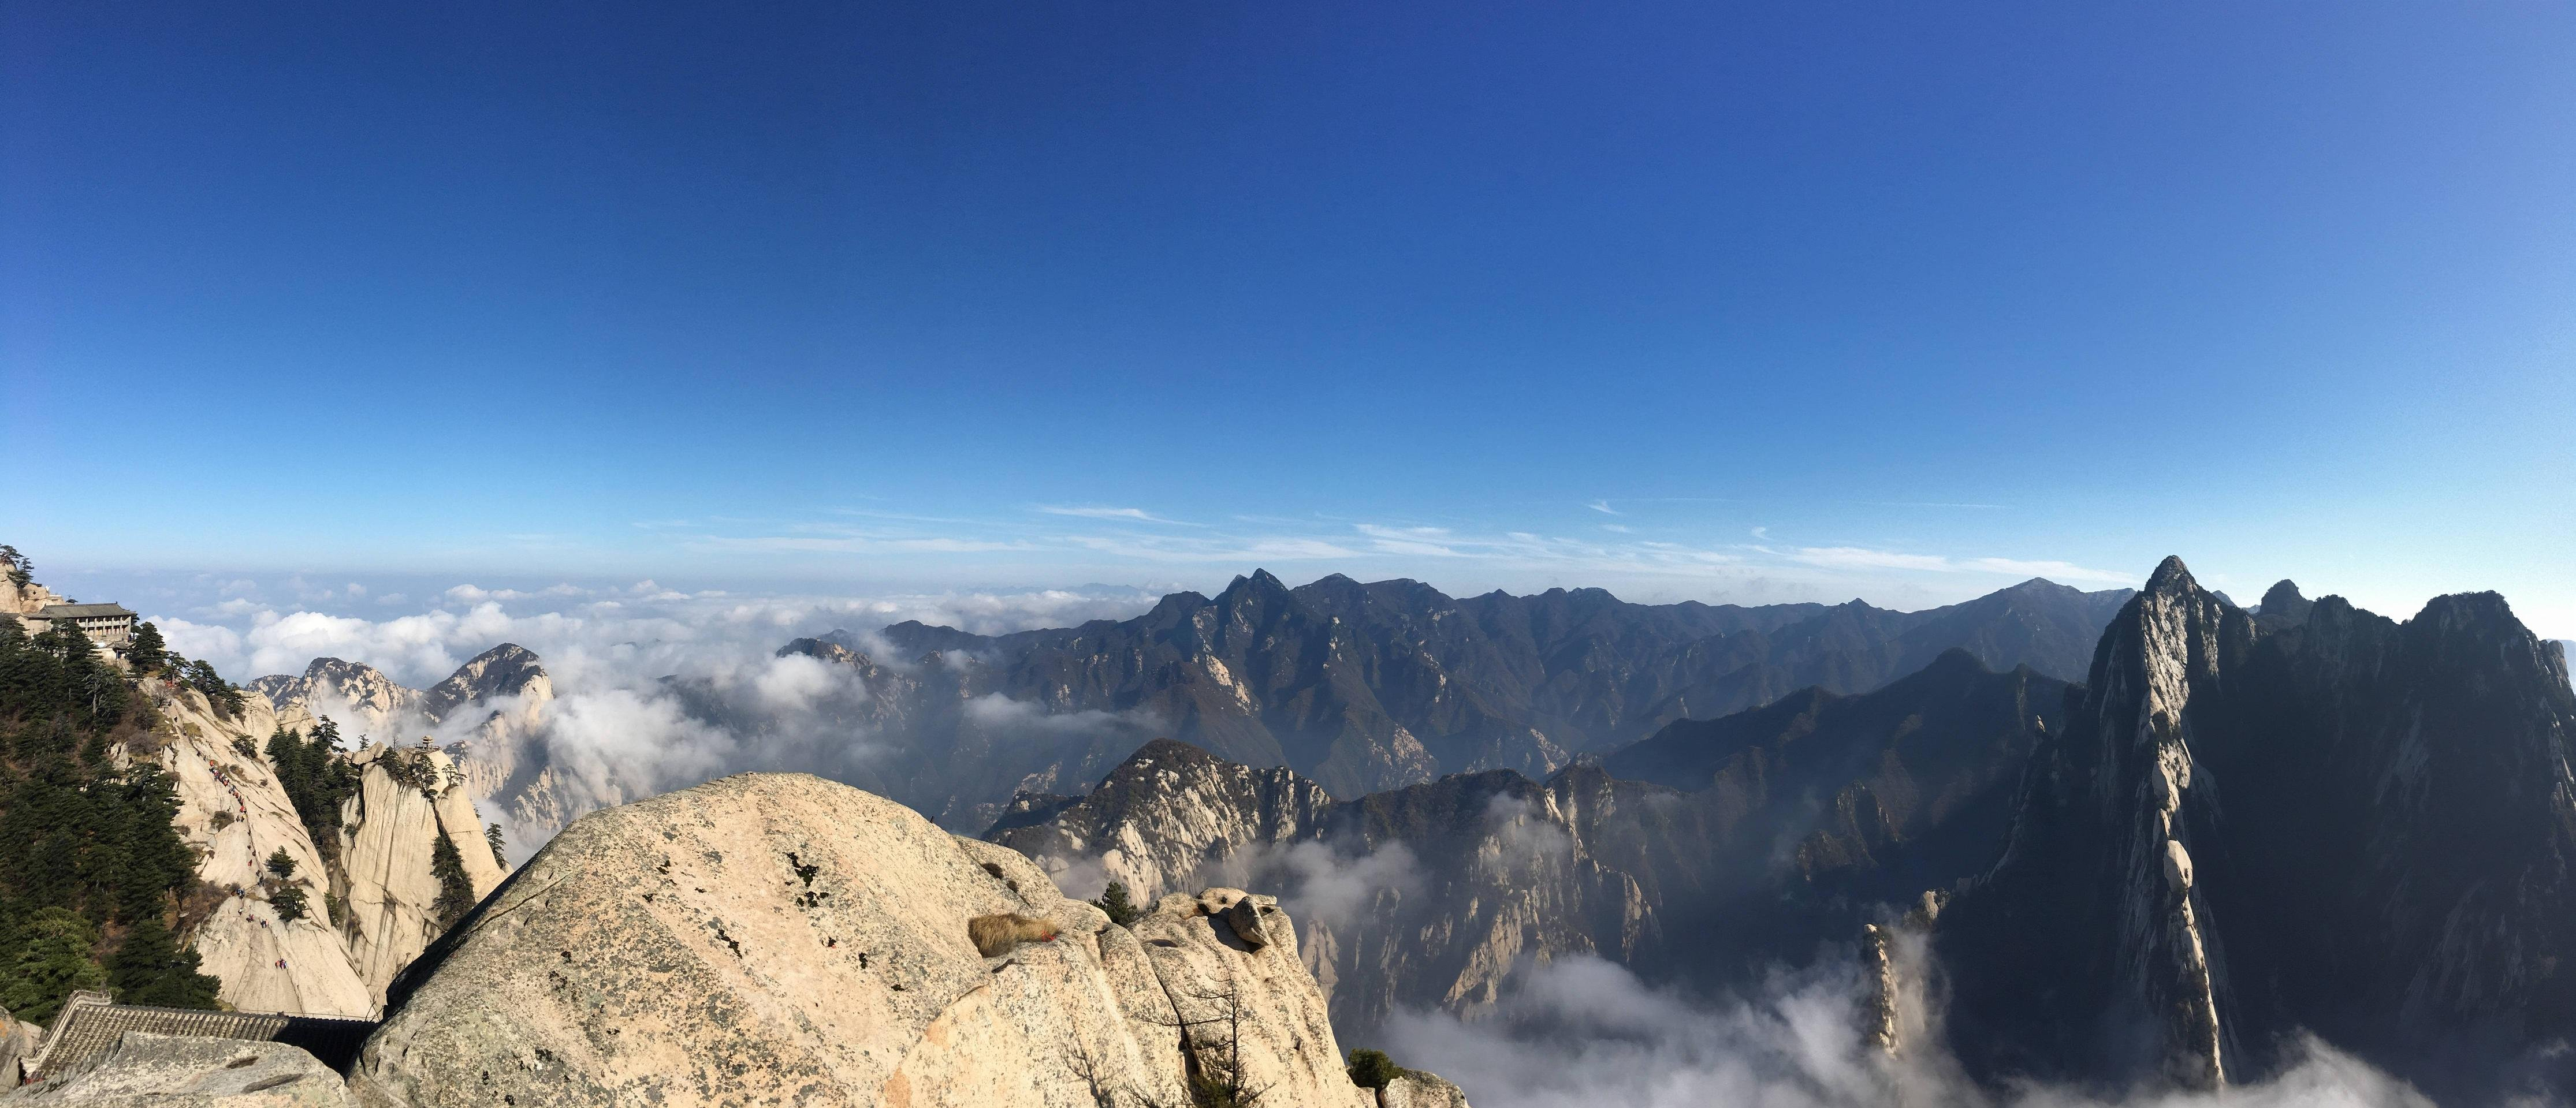 Mount Hua South Peak China wallpaper